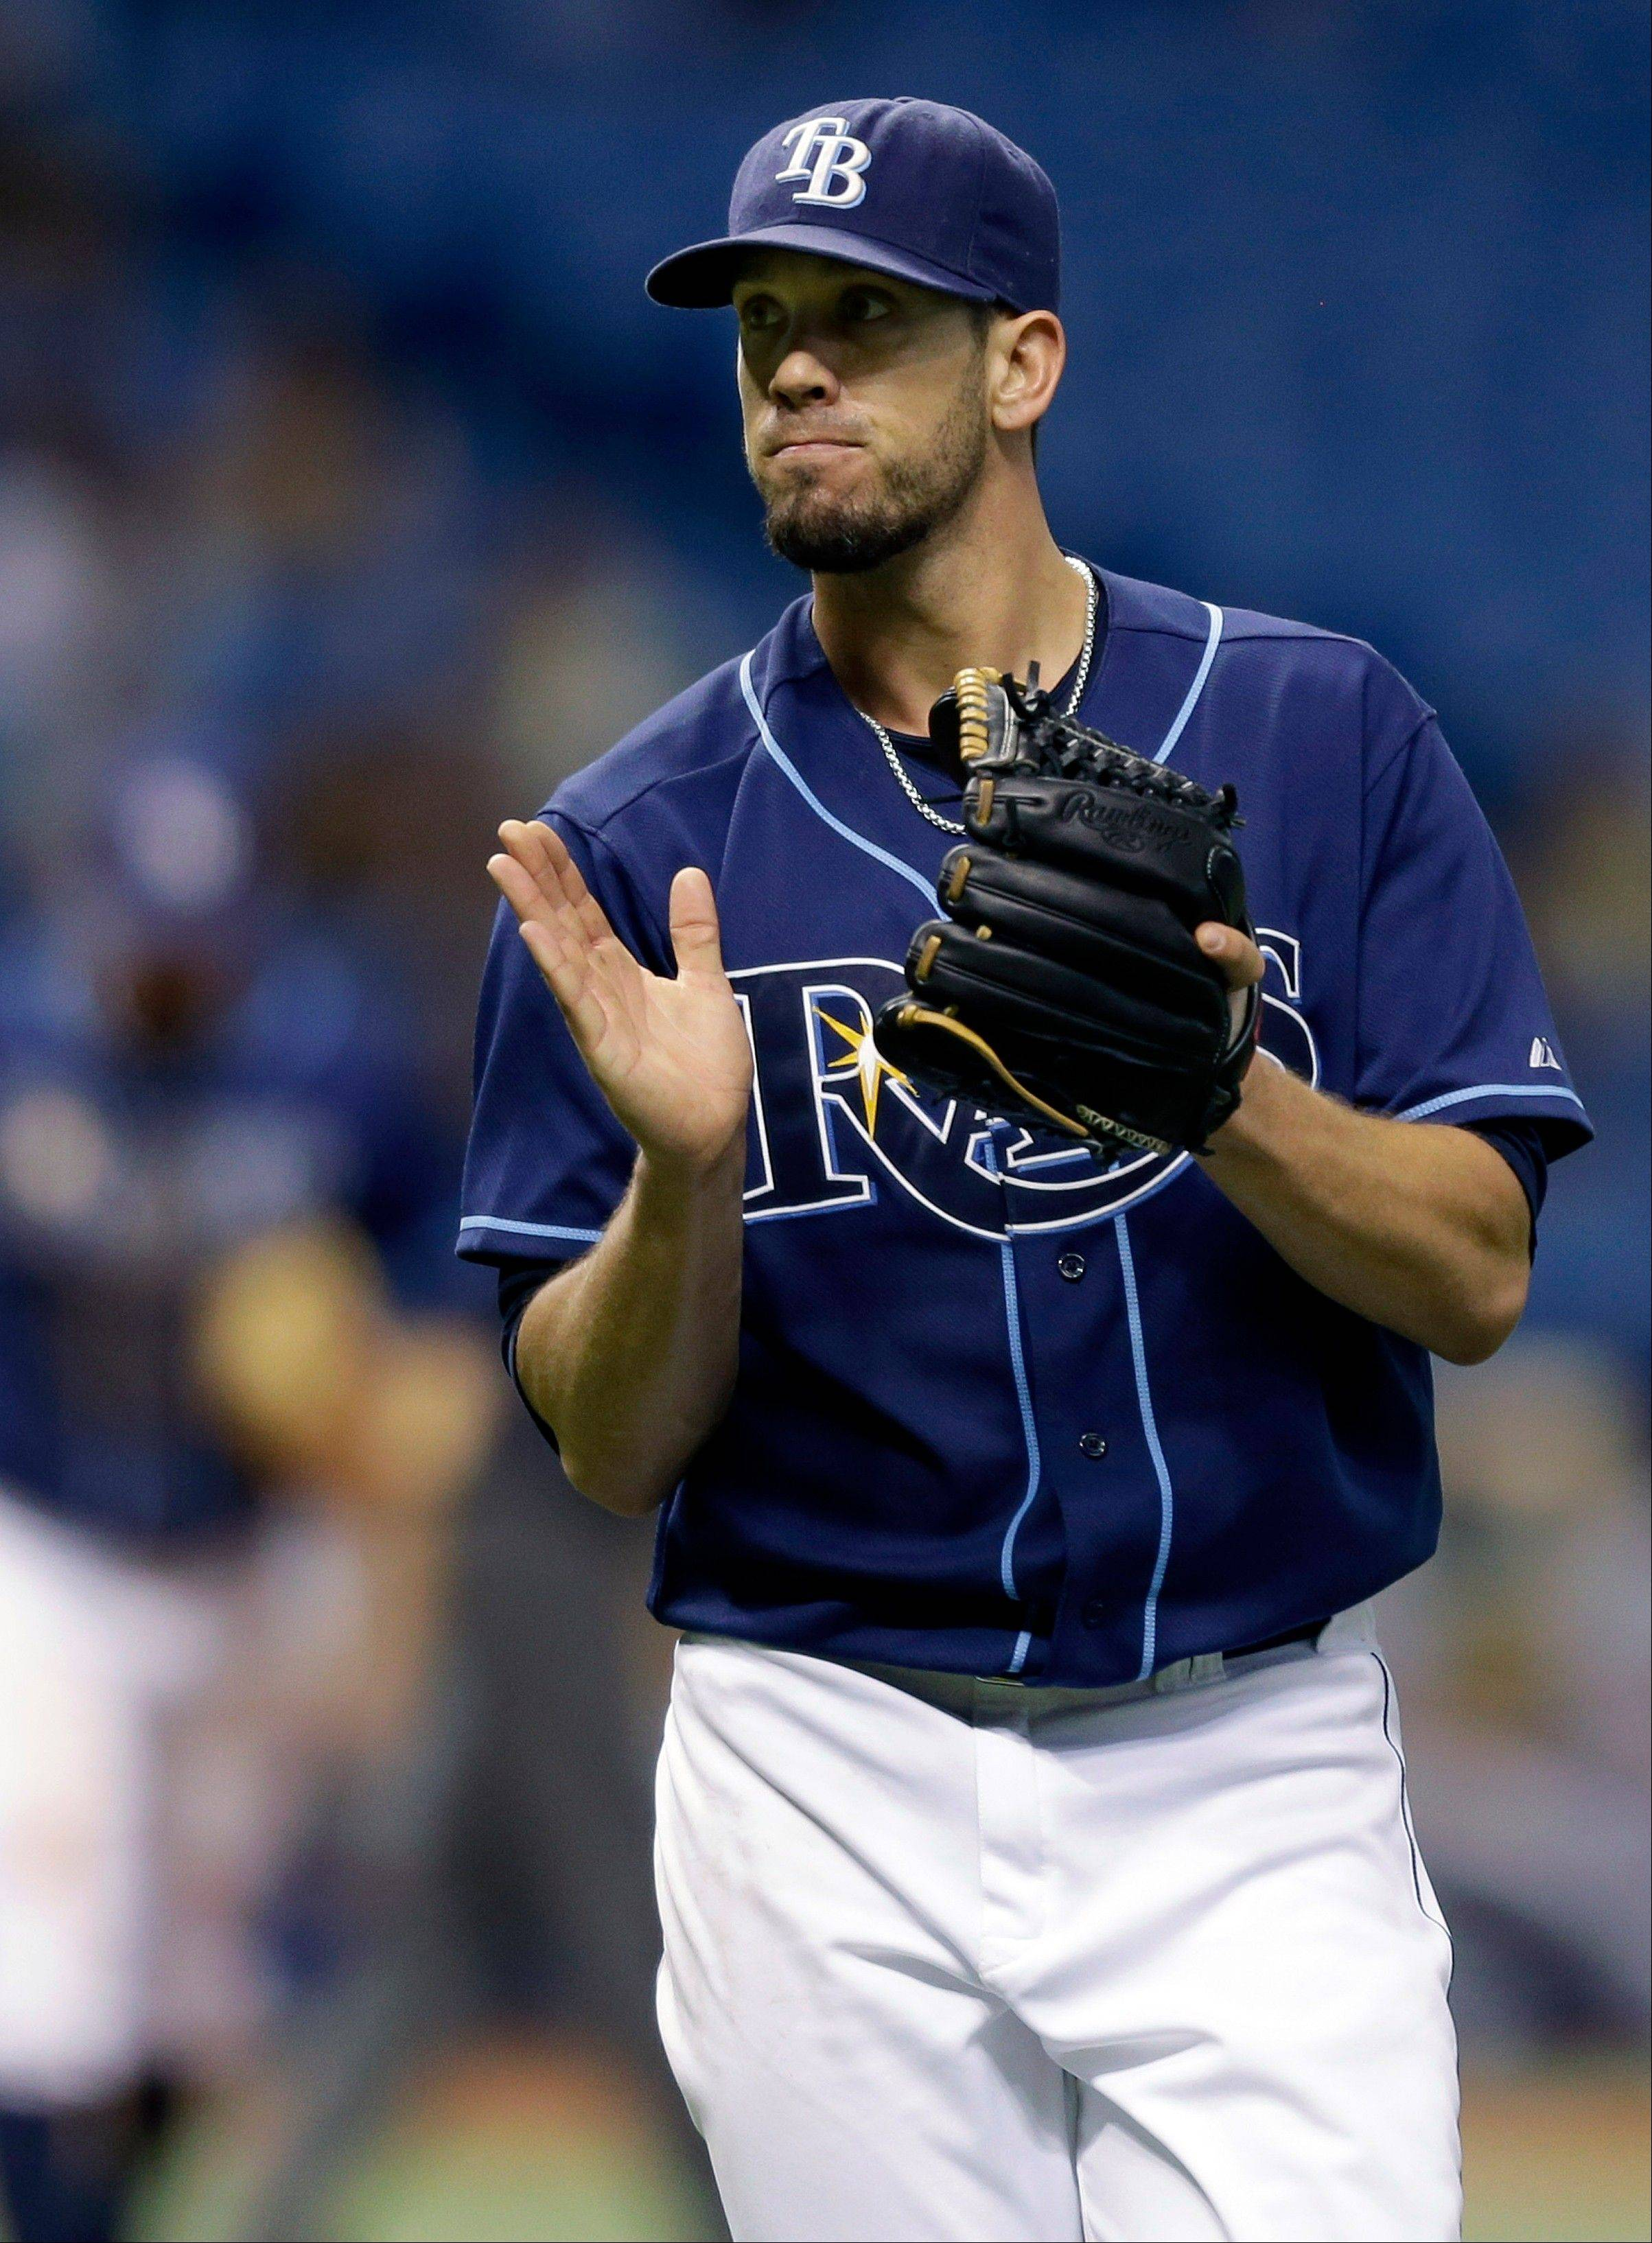 Tampa Bay Rays starting pitcher James Shields struck out seven and walked none Wednesday in a home win over Kansas City.